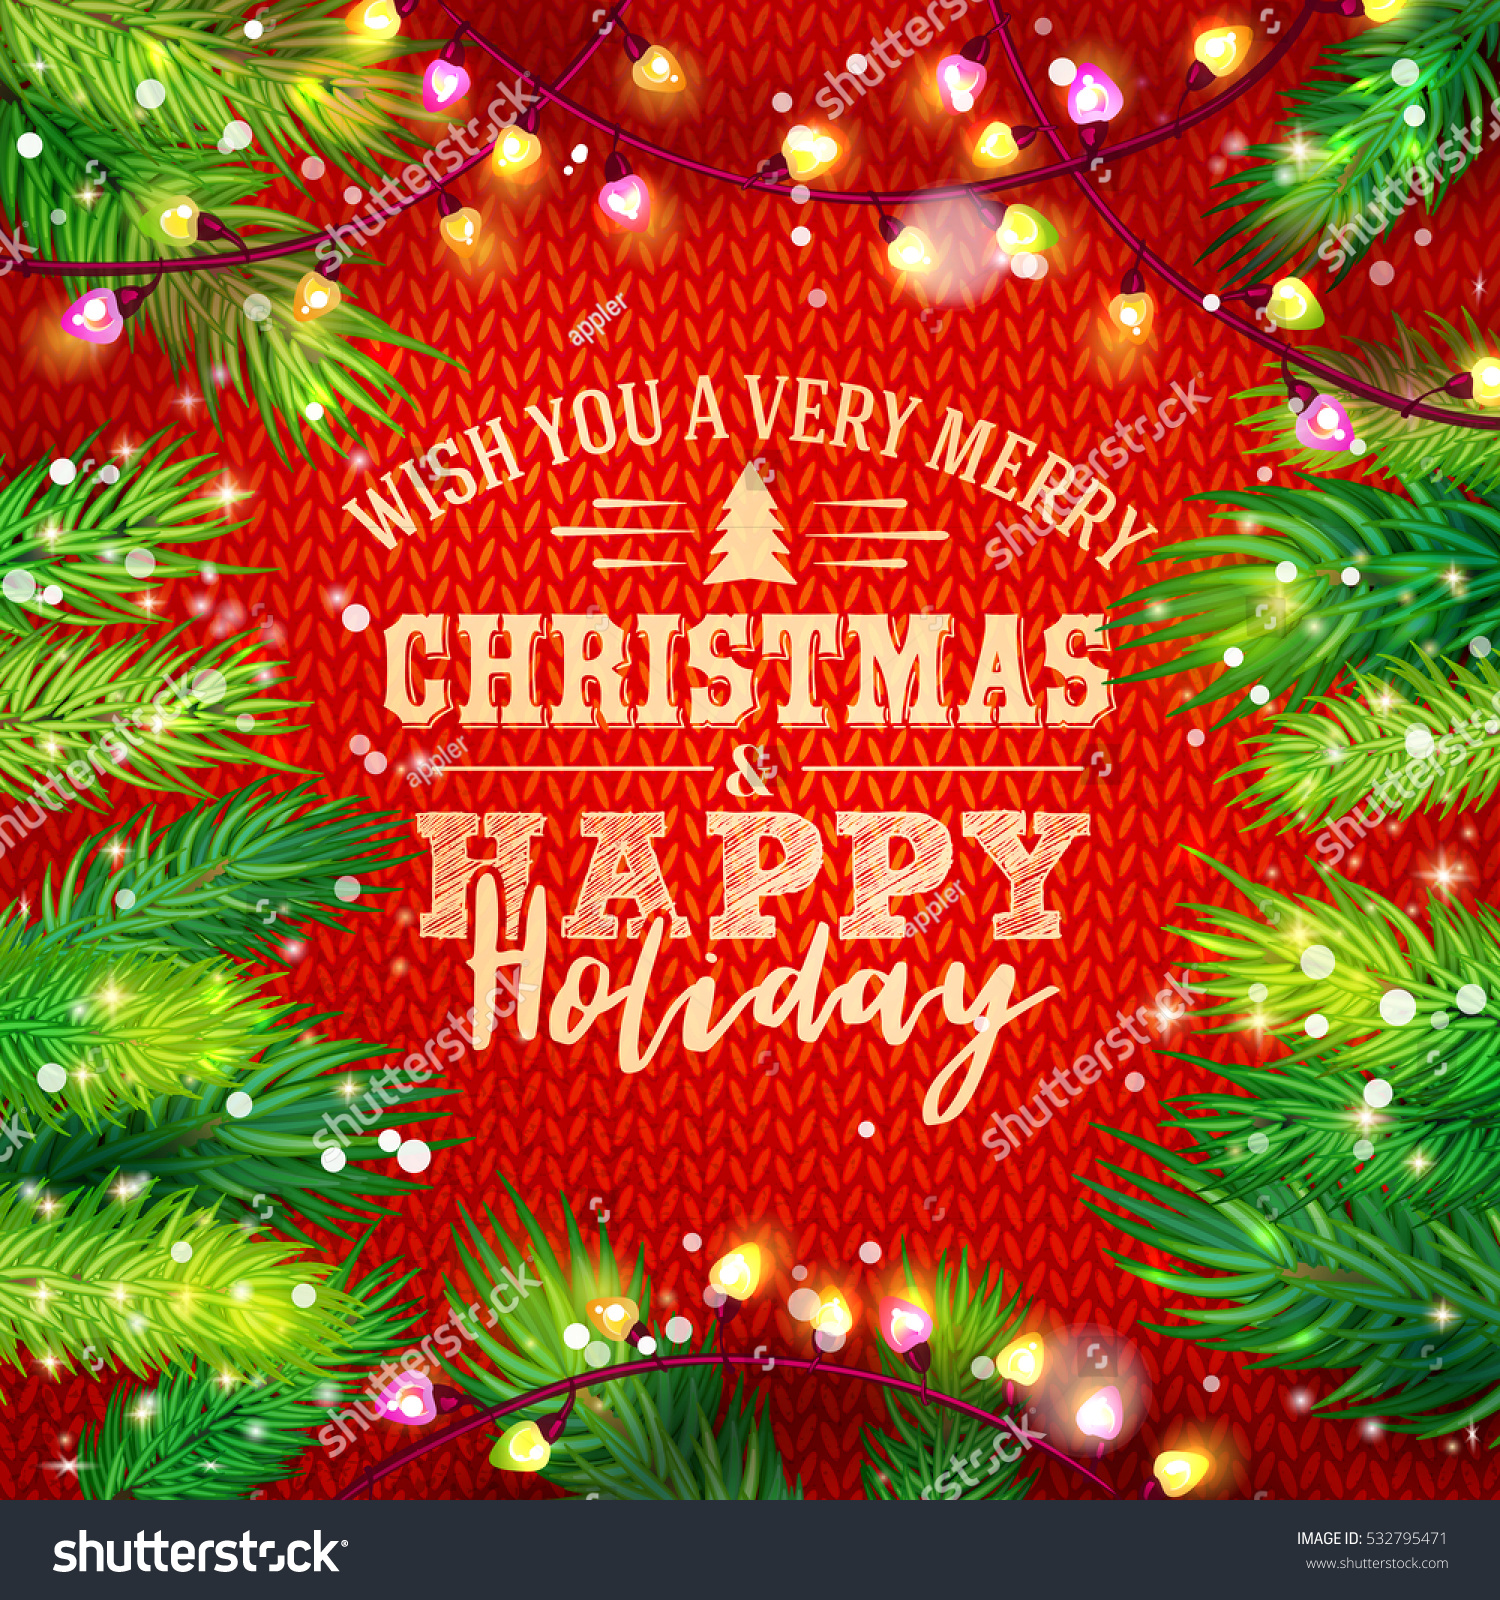 Wish You Merry Christmas Happy Holiday Stock Vector Royalty Free